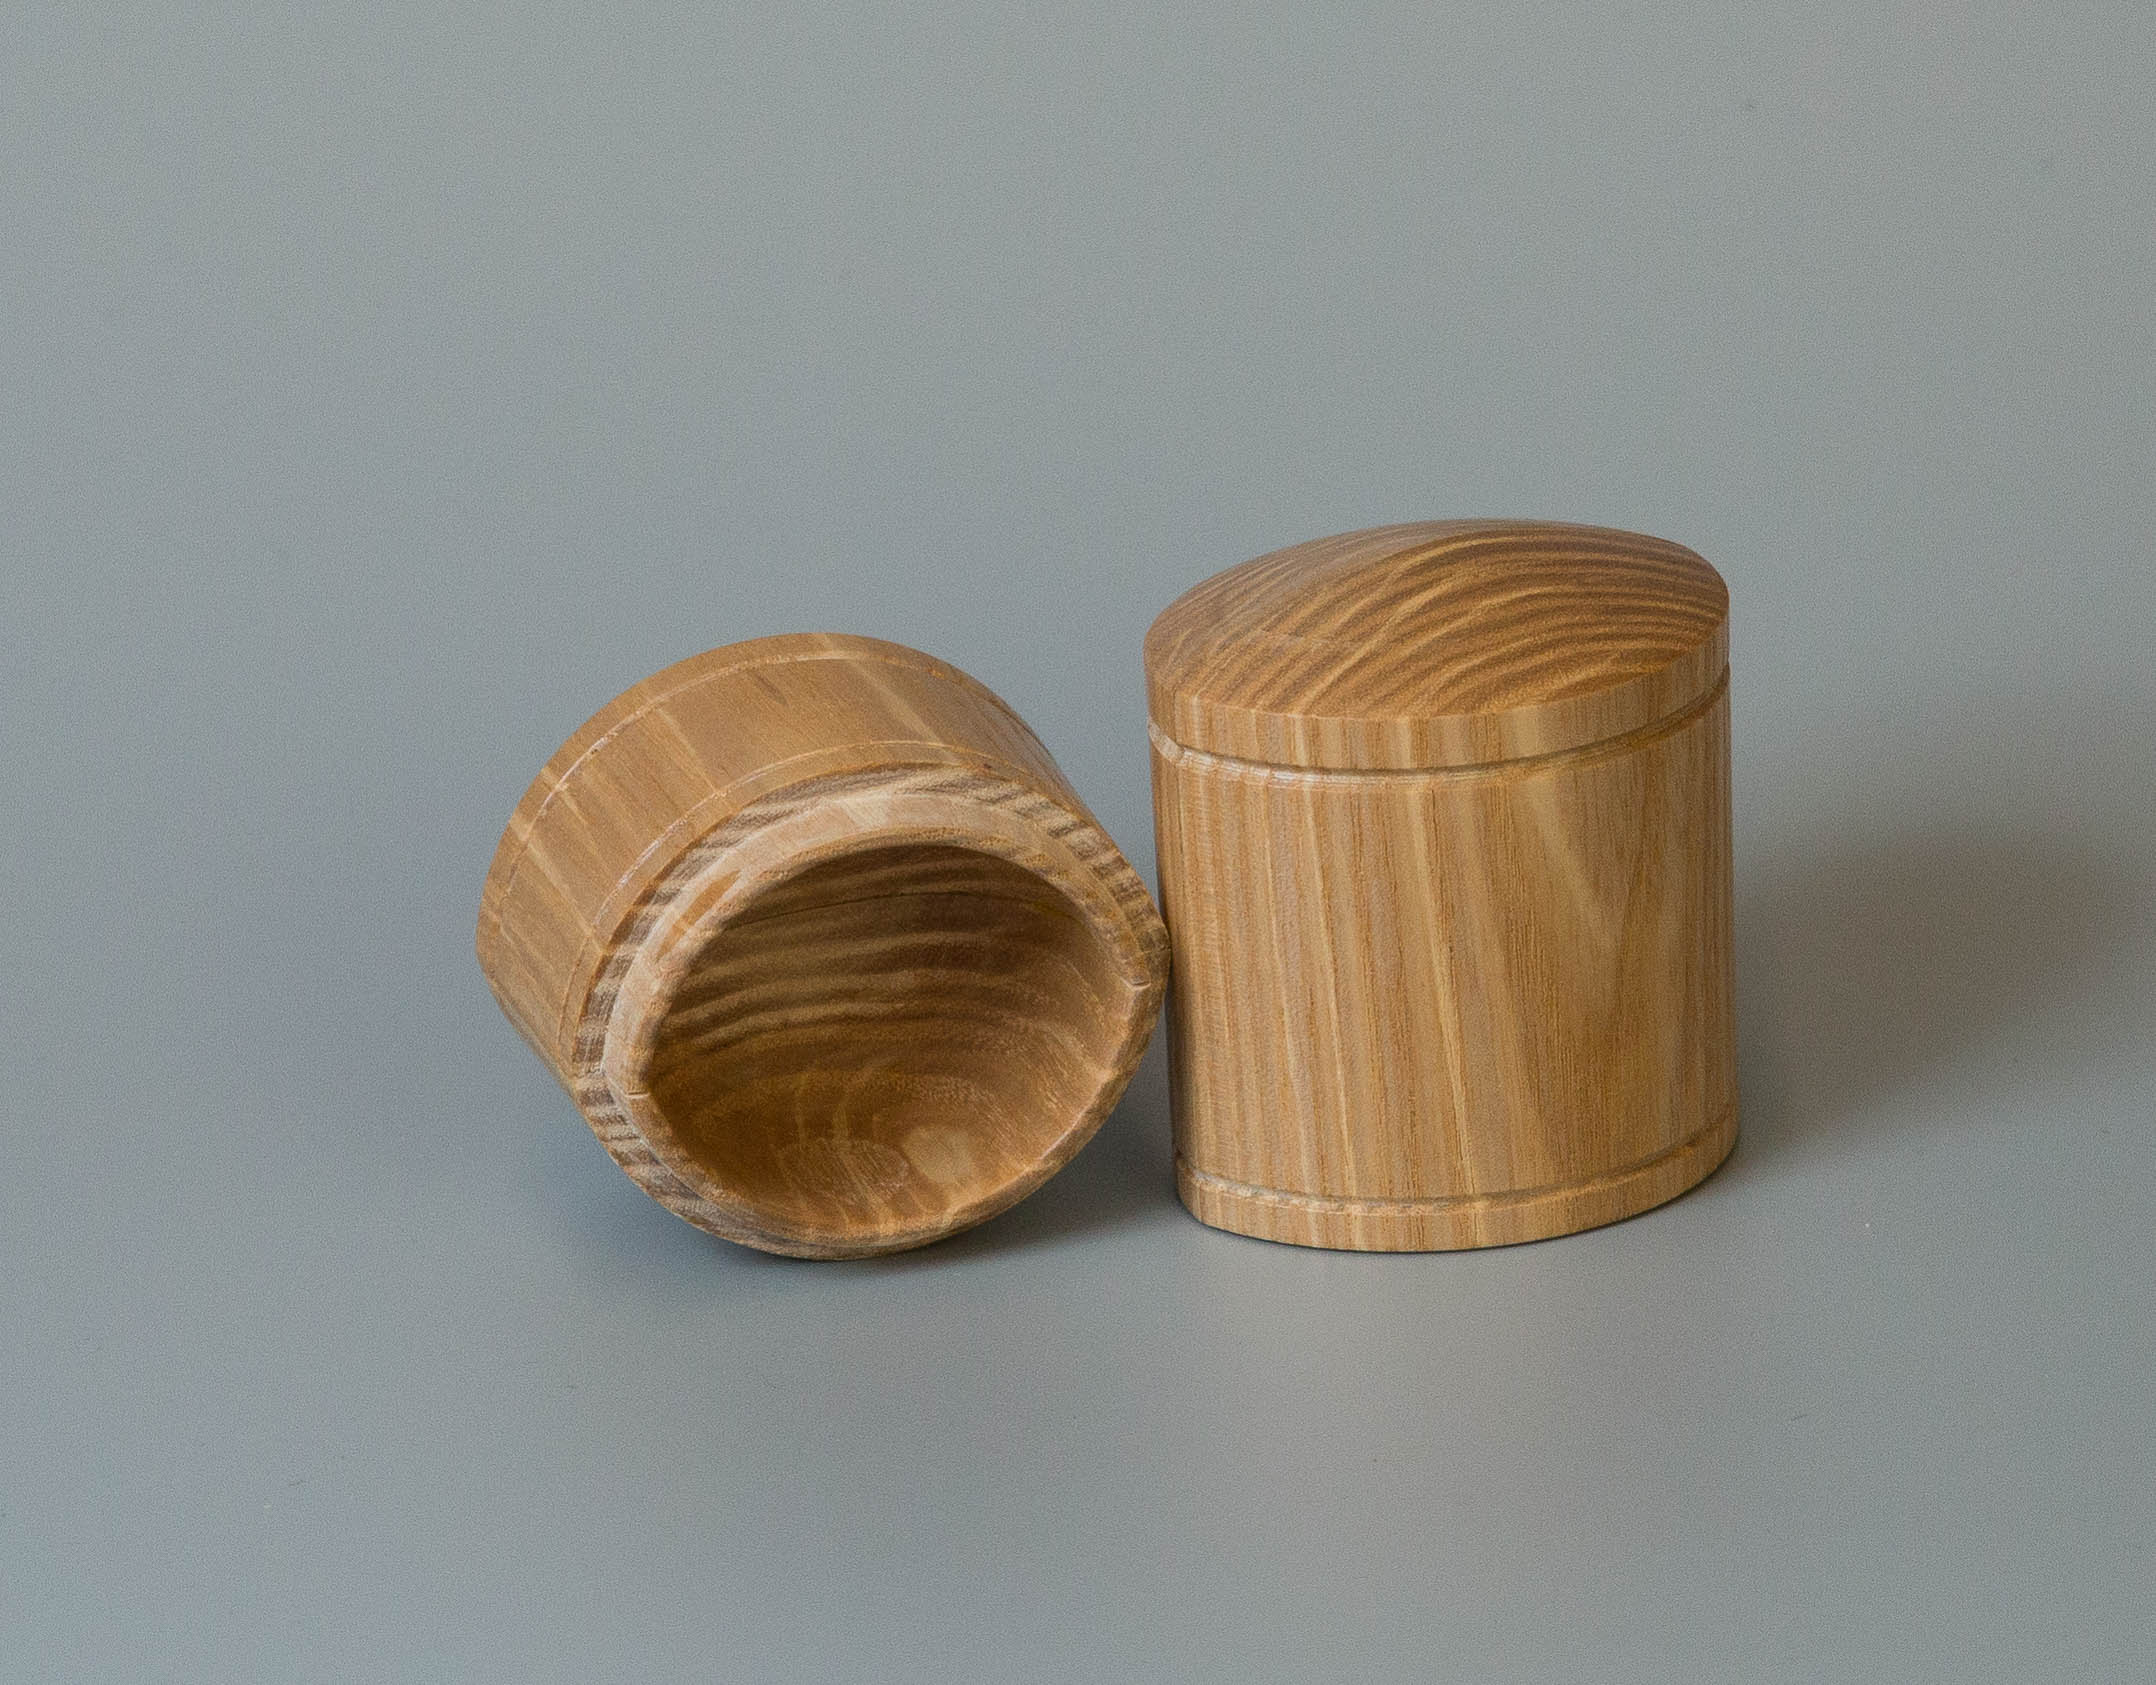 A small oval box by Tim Holmes